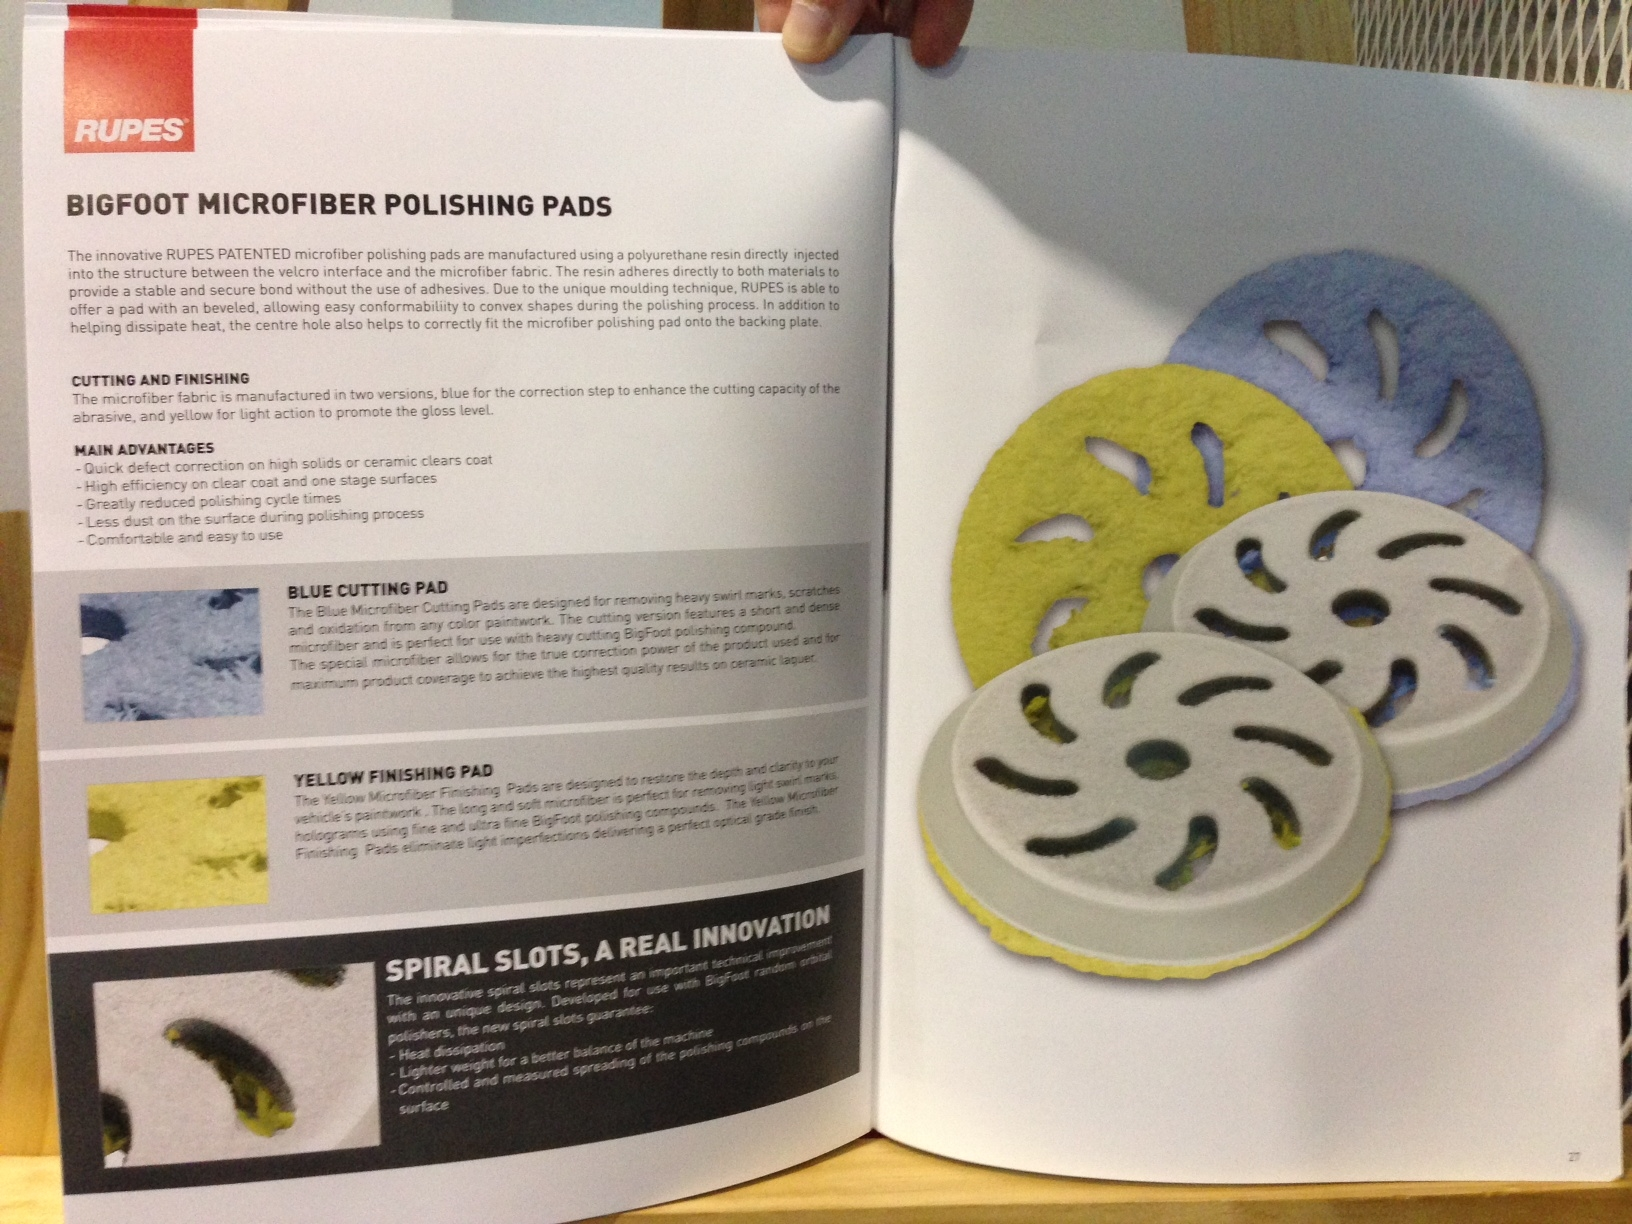 Rupes Bigfoot Microfiber Polishing Pads Specs